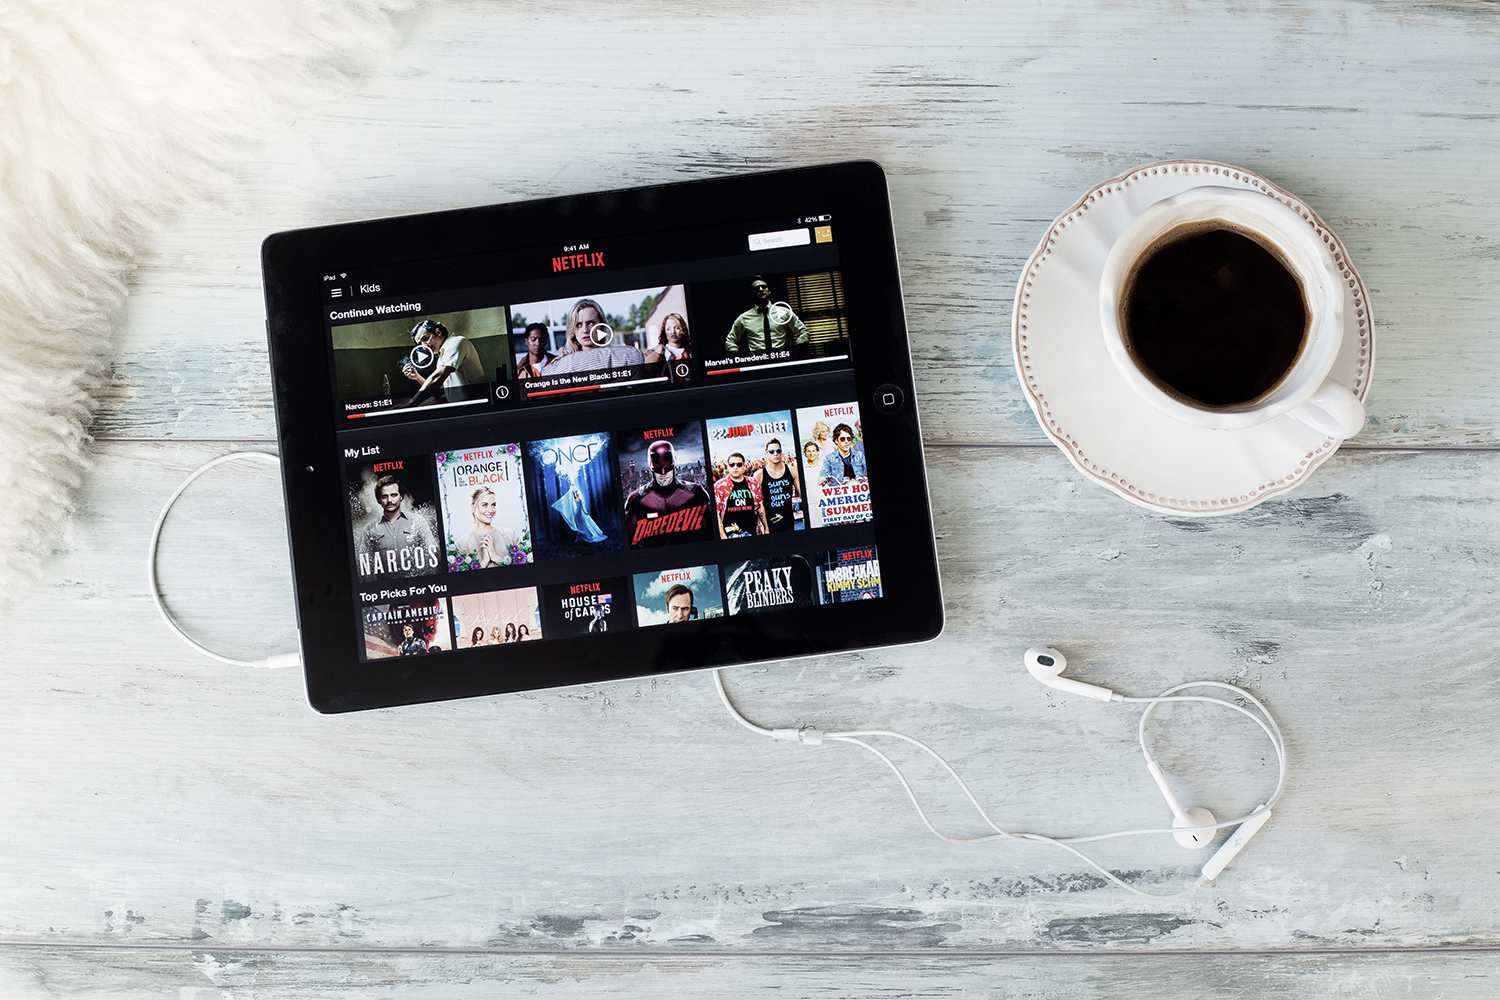 Netflix on iPad connected to Apple EarPods next to a cup and saucer of coffee on a wood floor